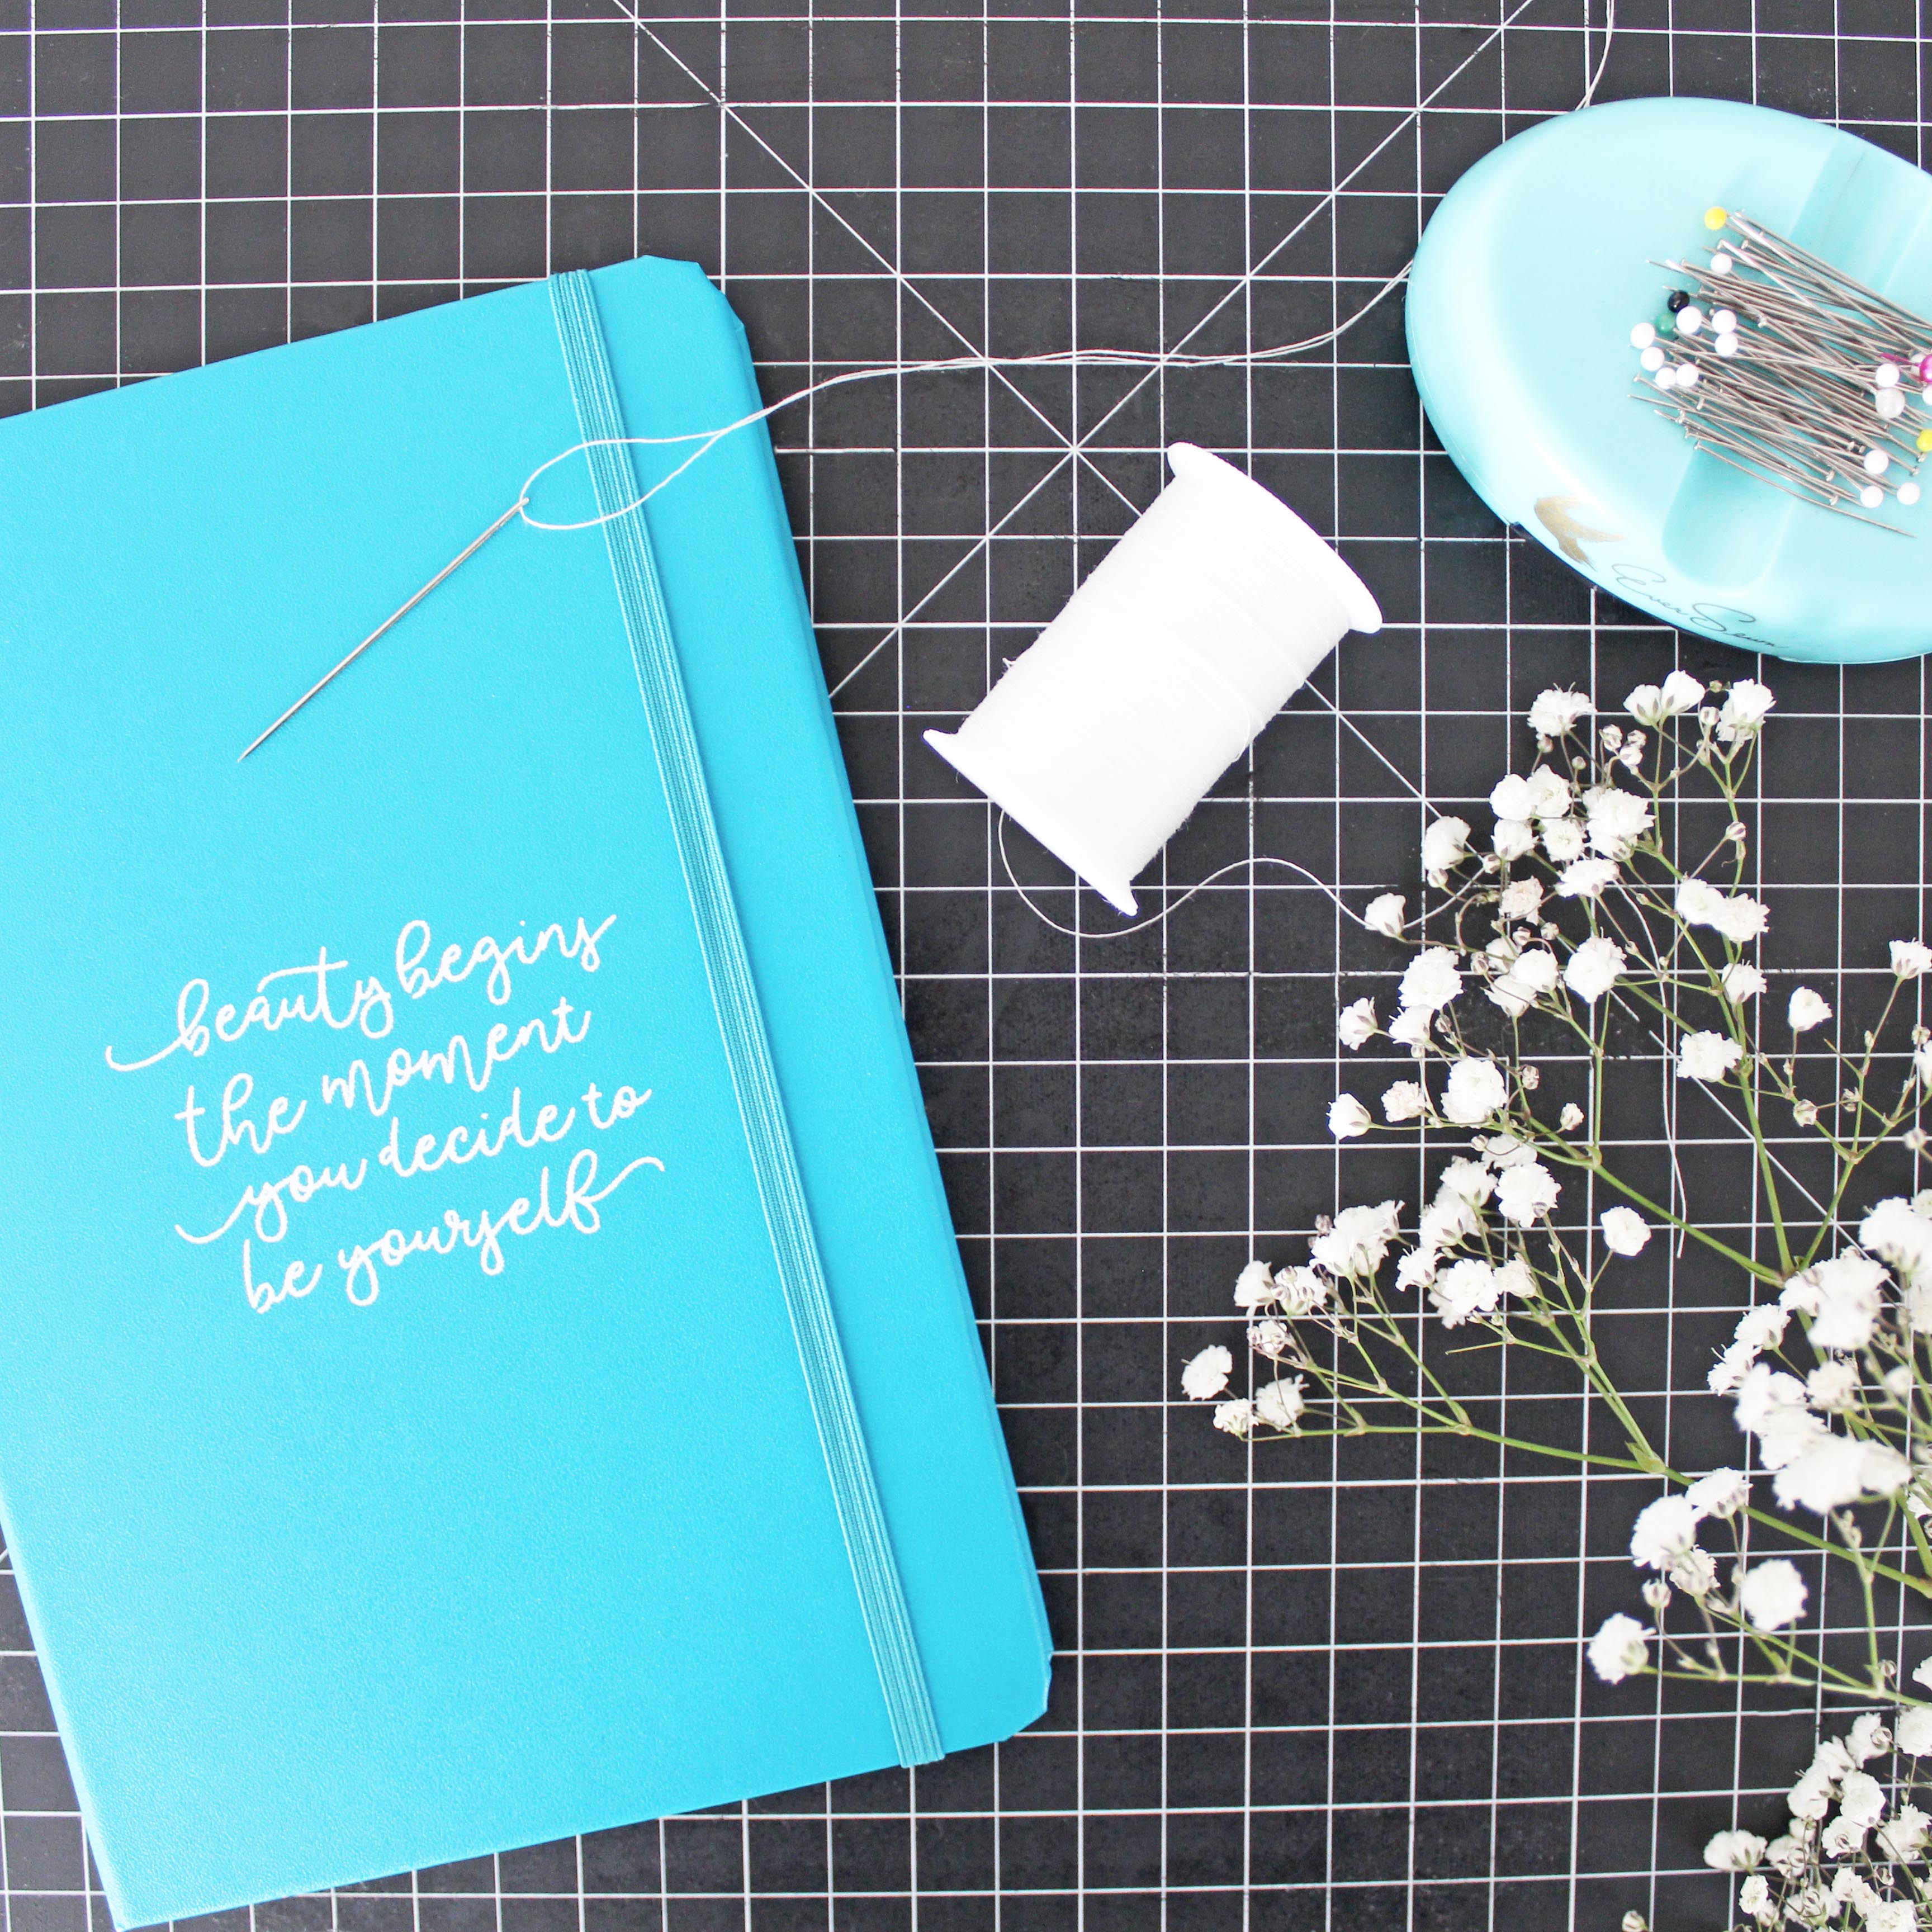 Repair Your Own Clothes Journal, Sewing Needle, Pins